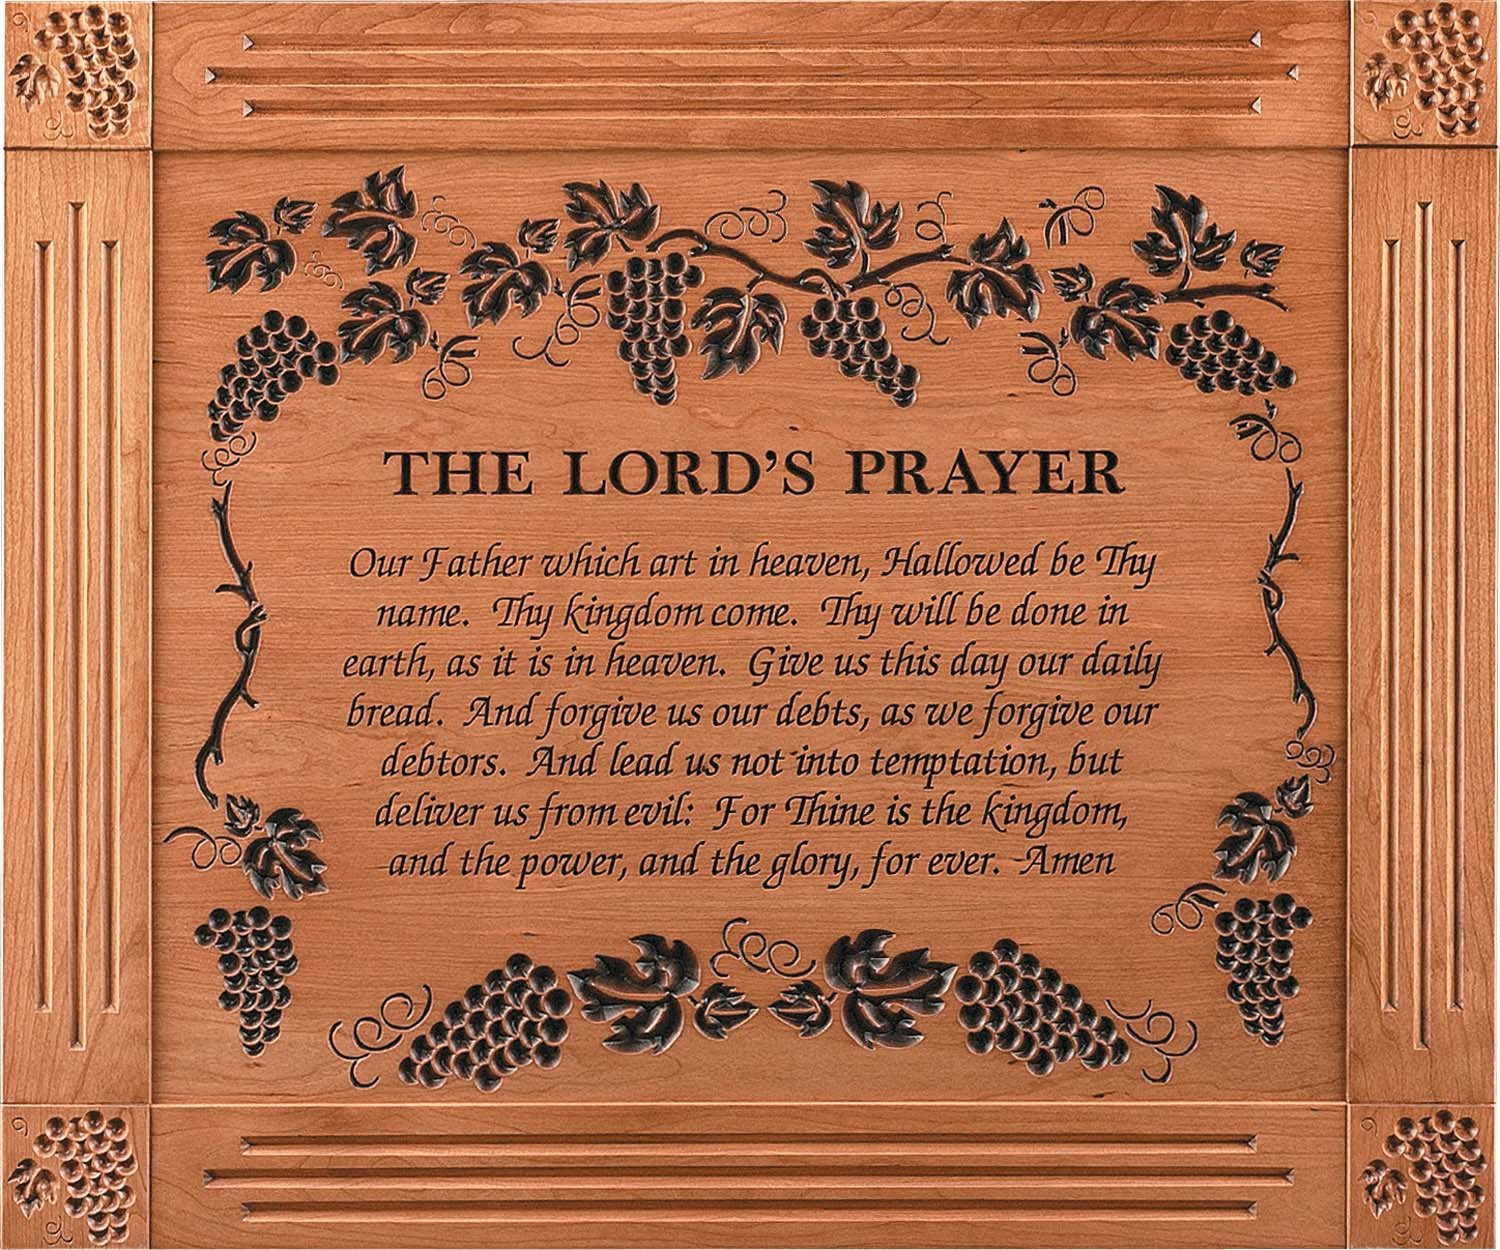 The Lord's Prayer Grape Vine 39 x 33 Cherry Wood Carved Wall Mounted Plaque by P Graham Dunn